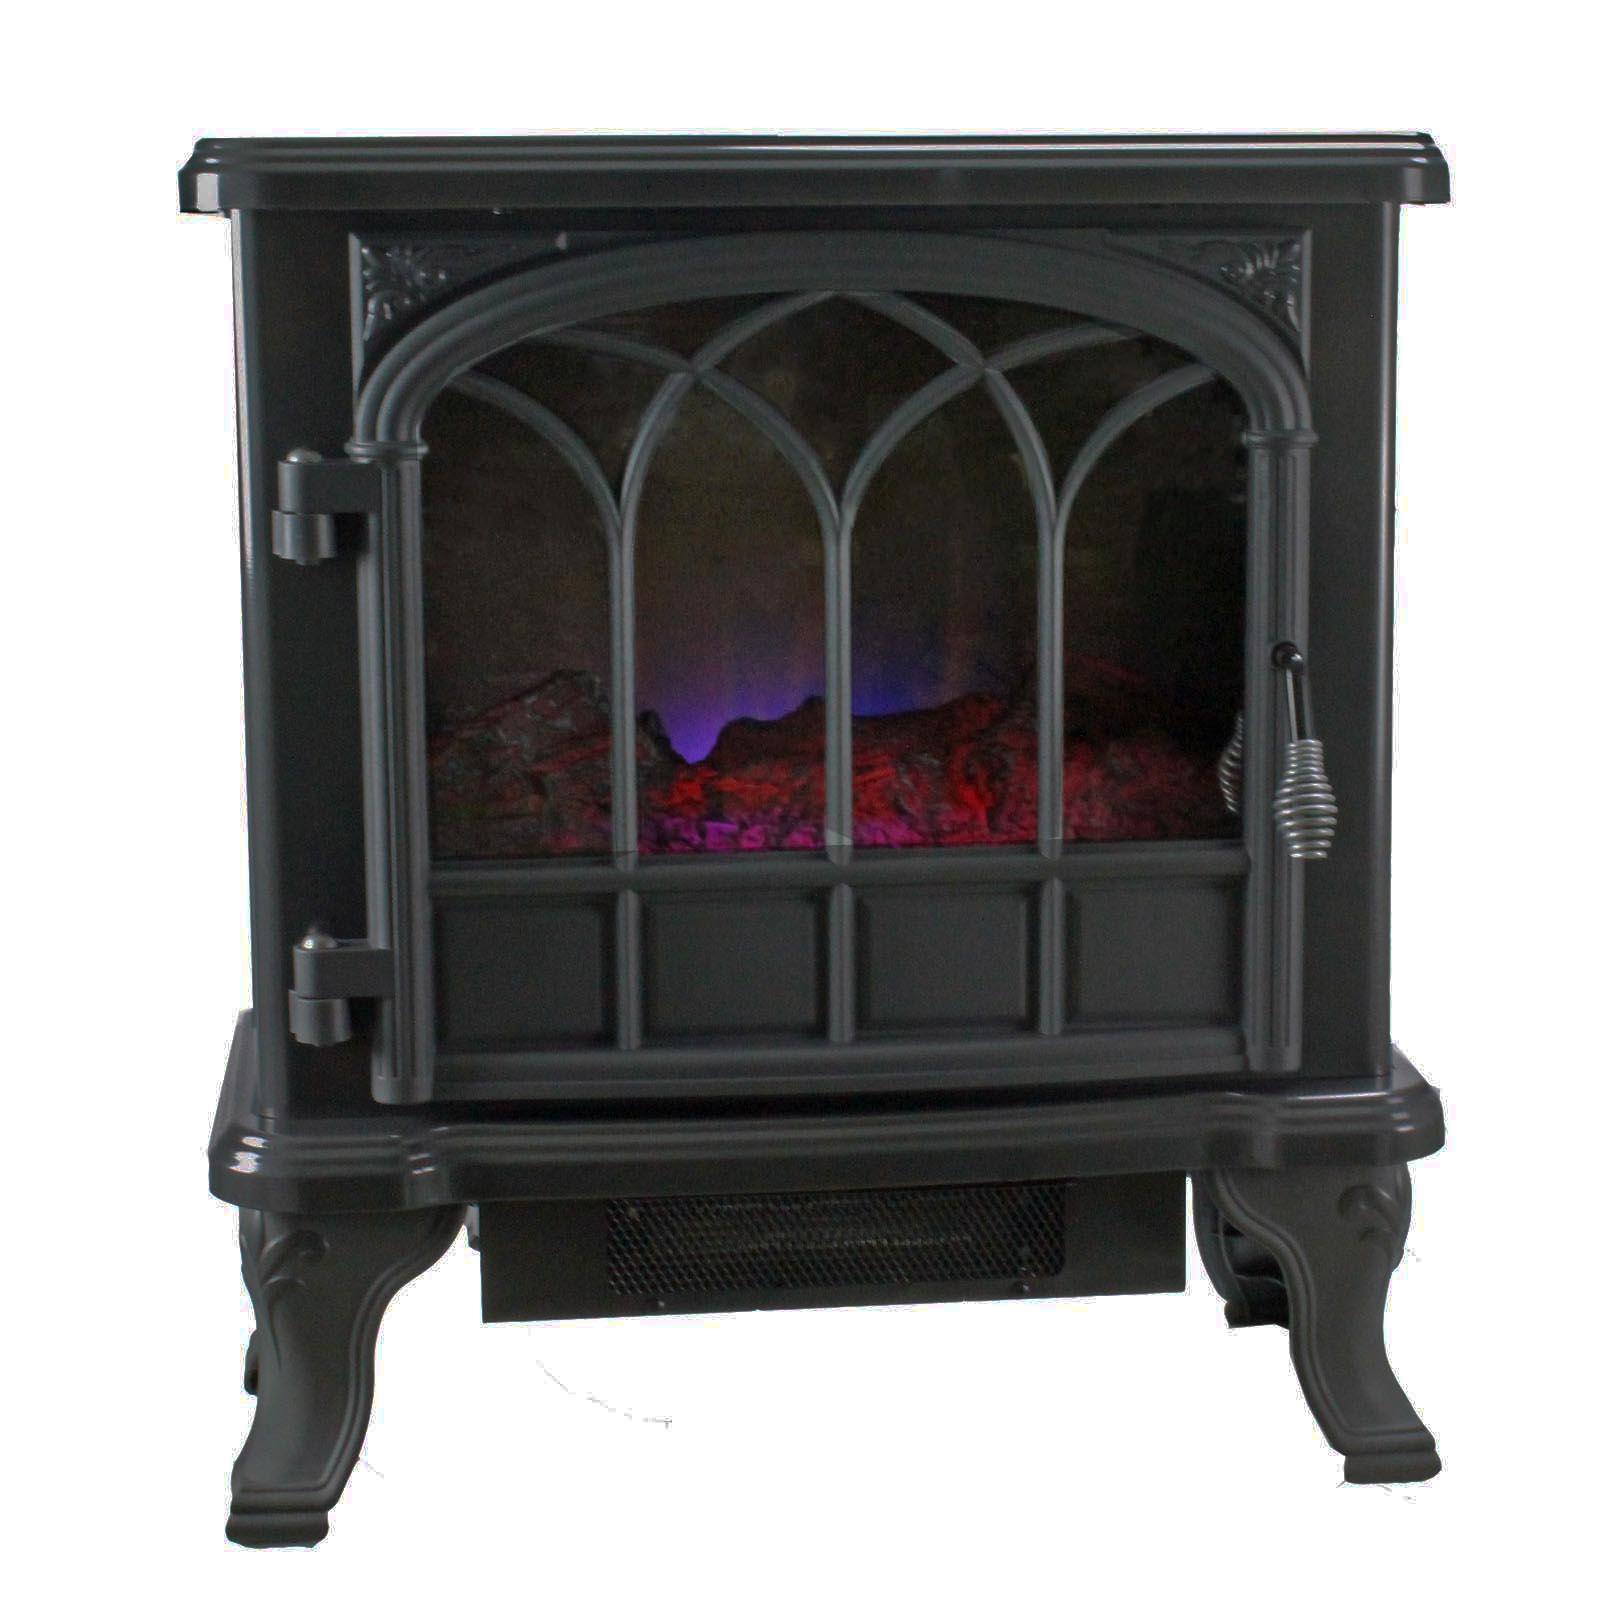 Duraflame 1500W Electric Stove Heater with Flame Effect, Black ...